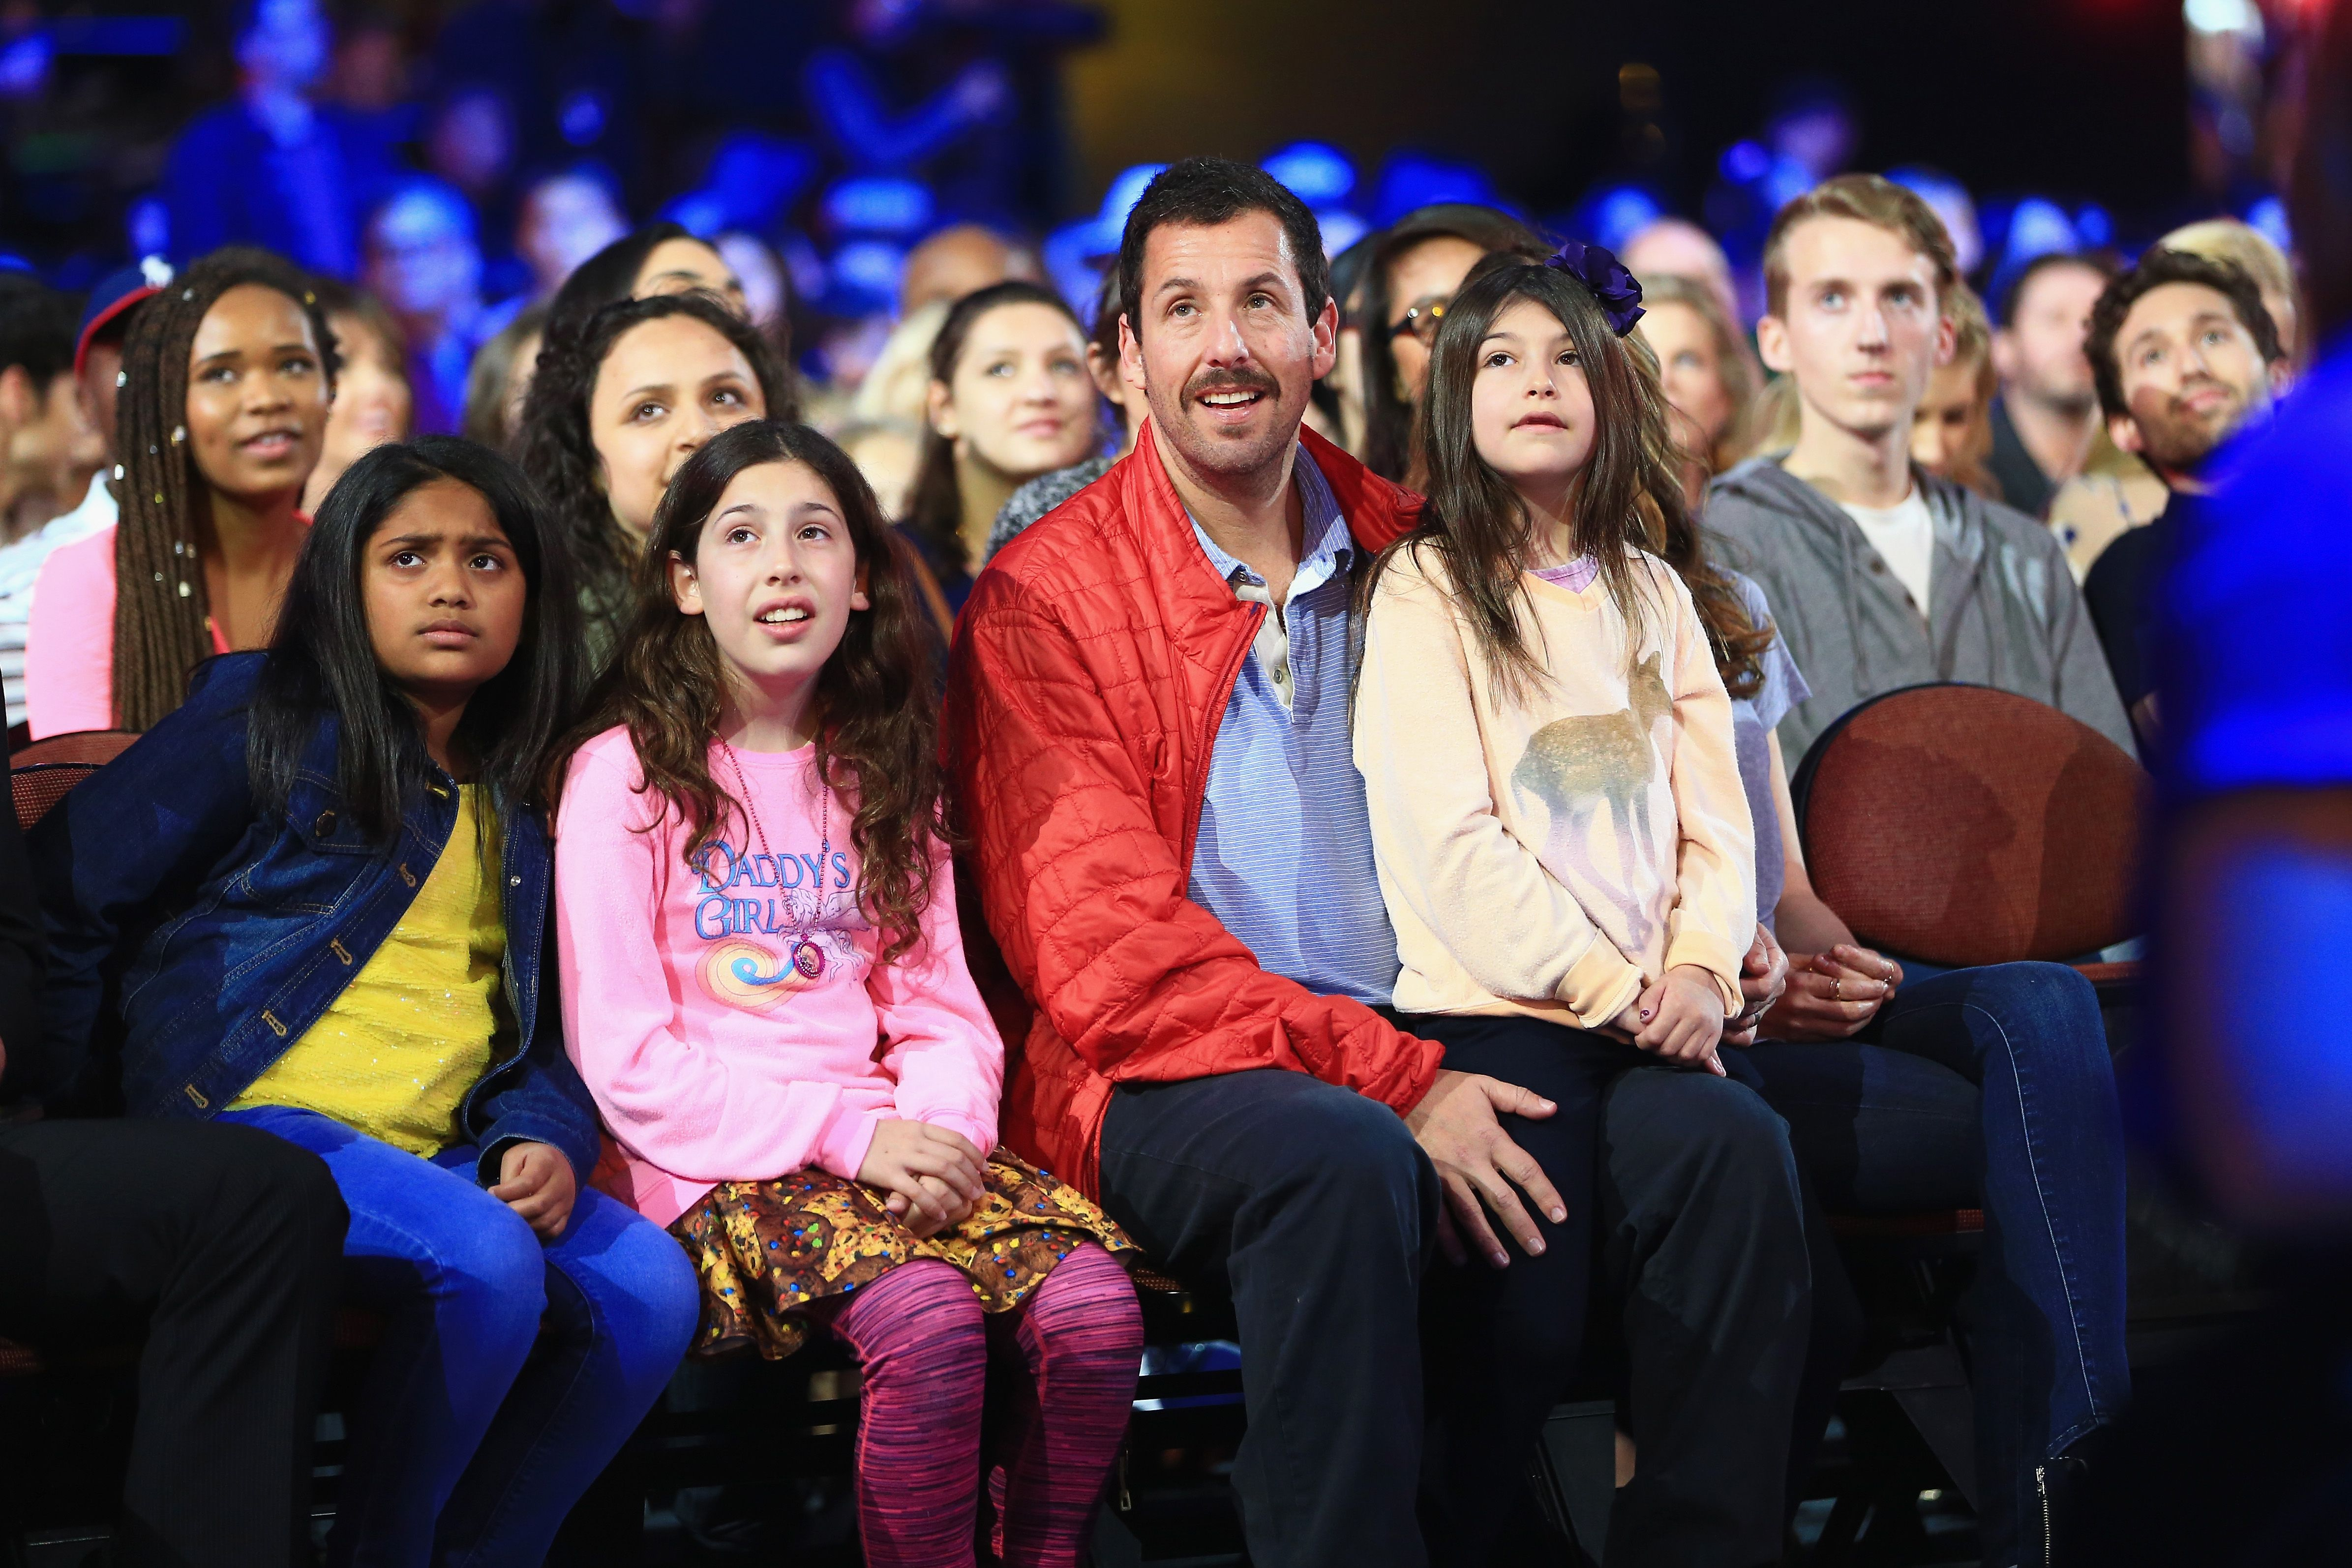 Adam Sandler, with daughters Sunny and Sadie Sandler at the Nickelodeon's 2016 Kids' Choice Awards in California | Source: Getty Images